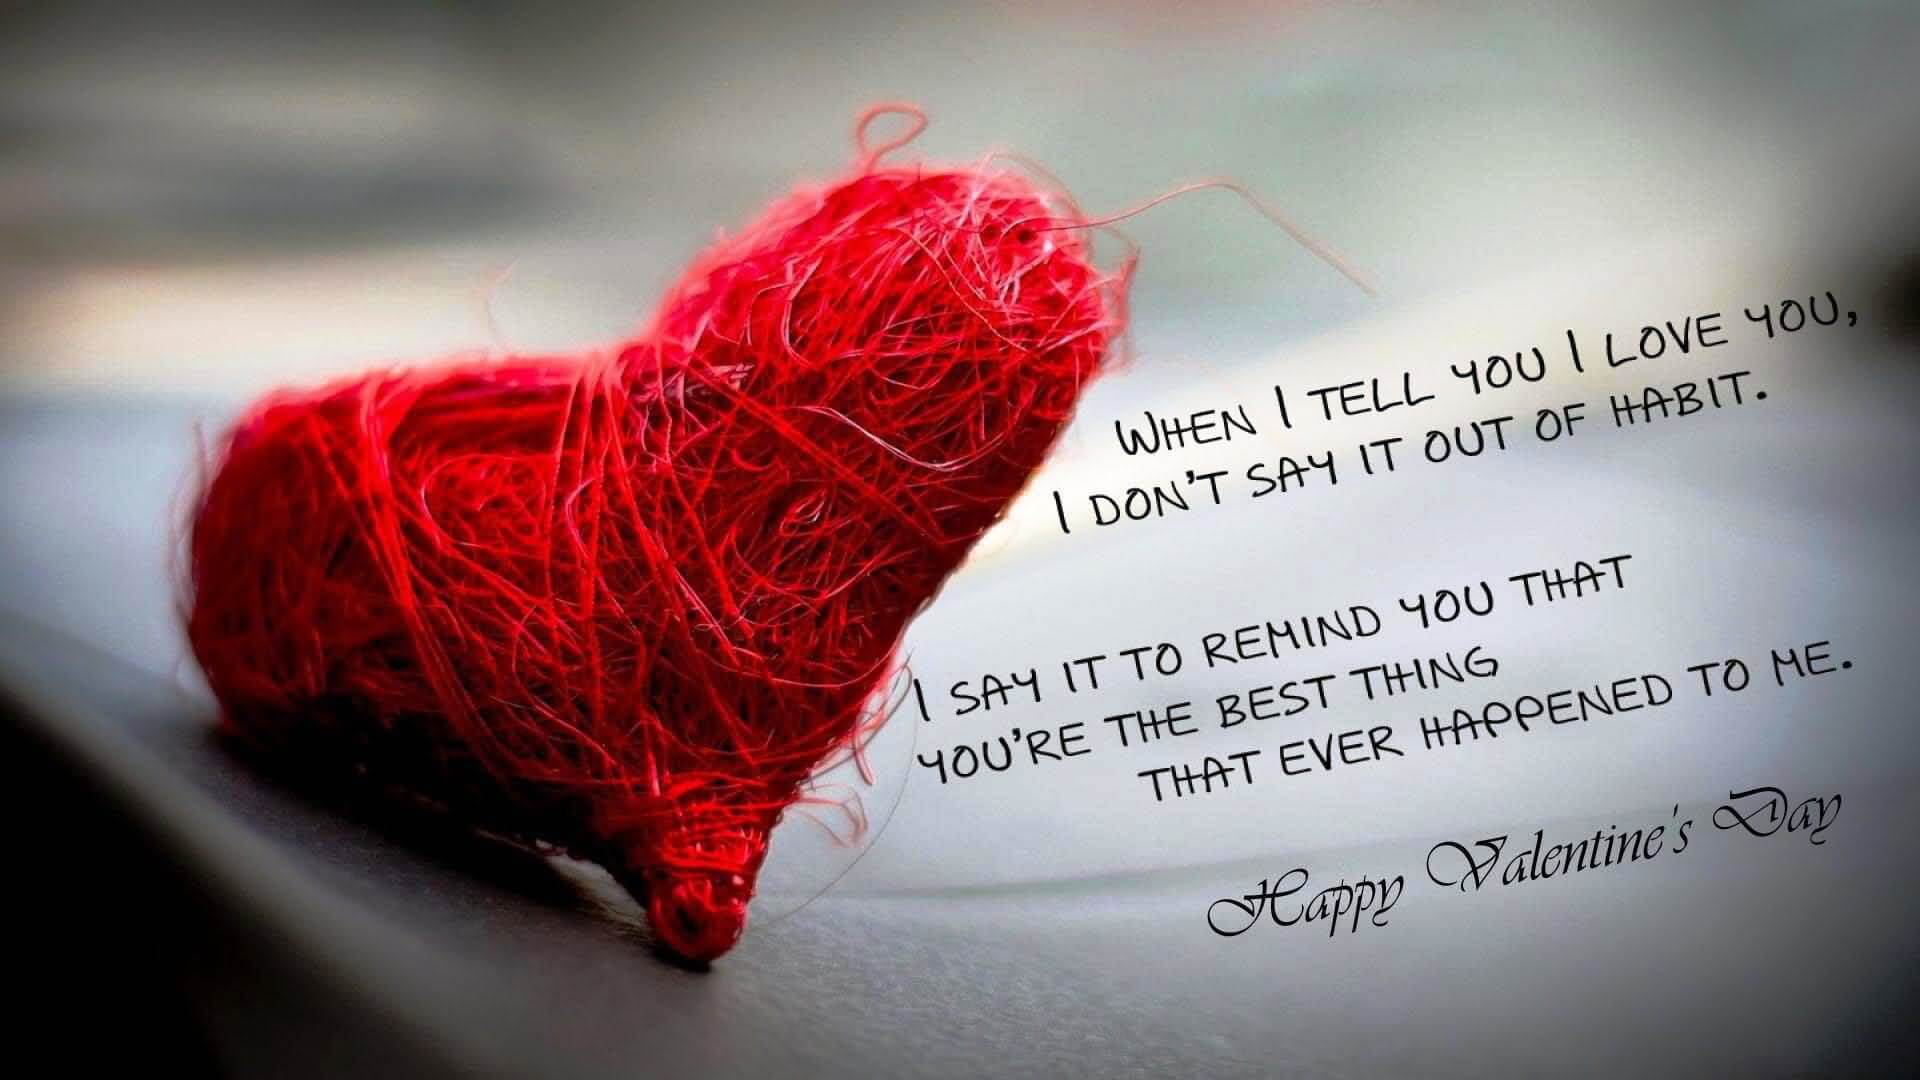 Love Quotes For Her On Valentines Day 02